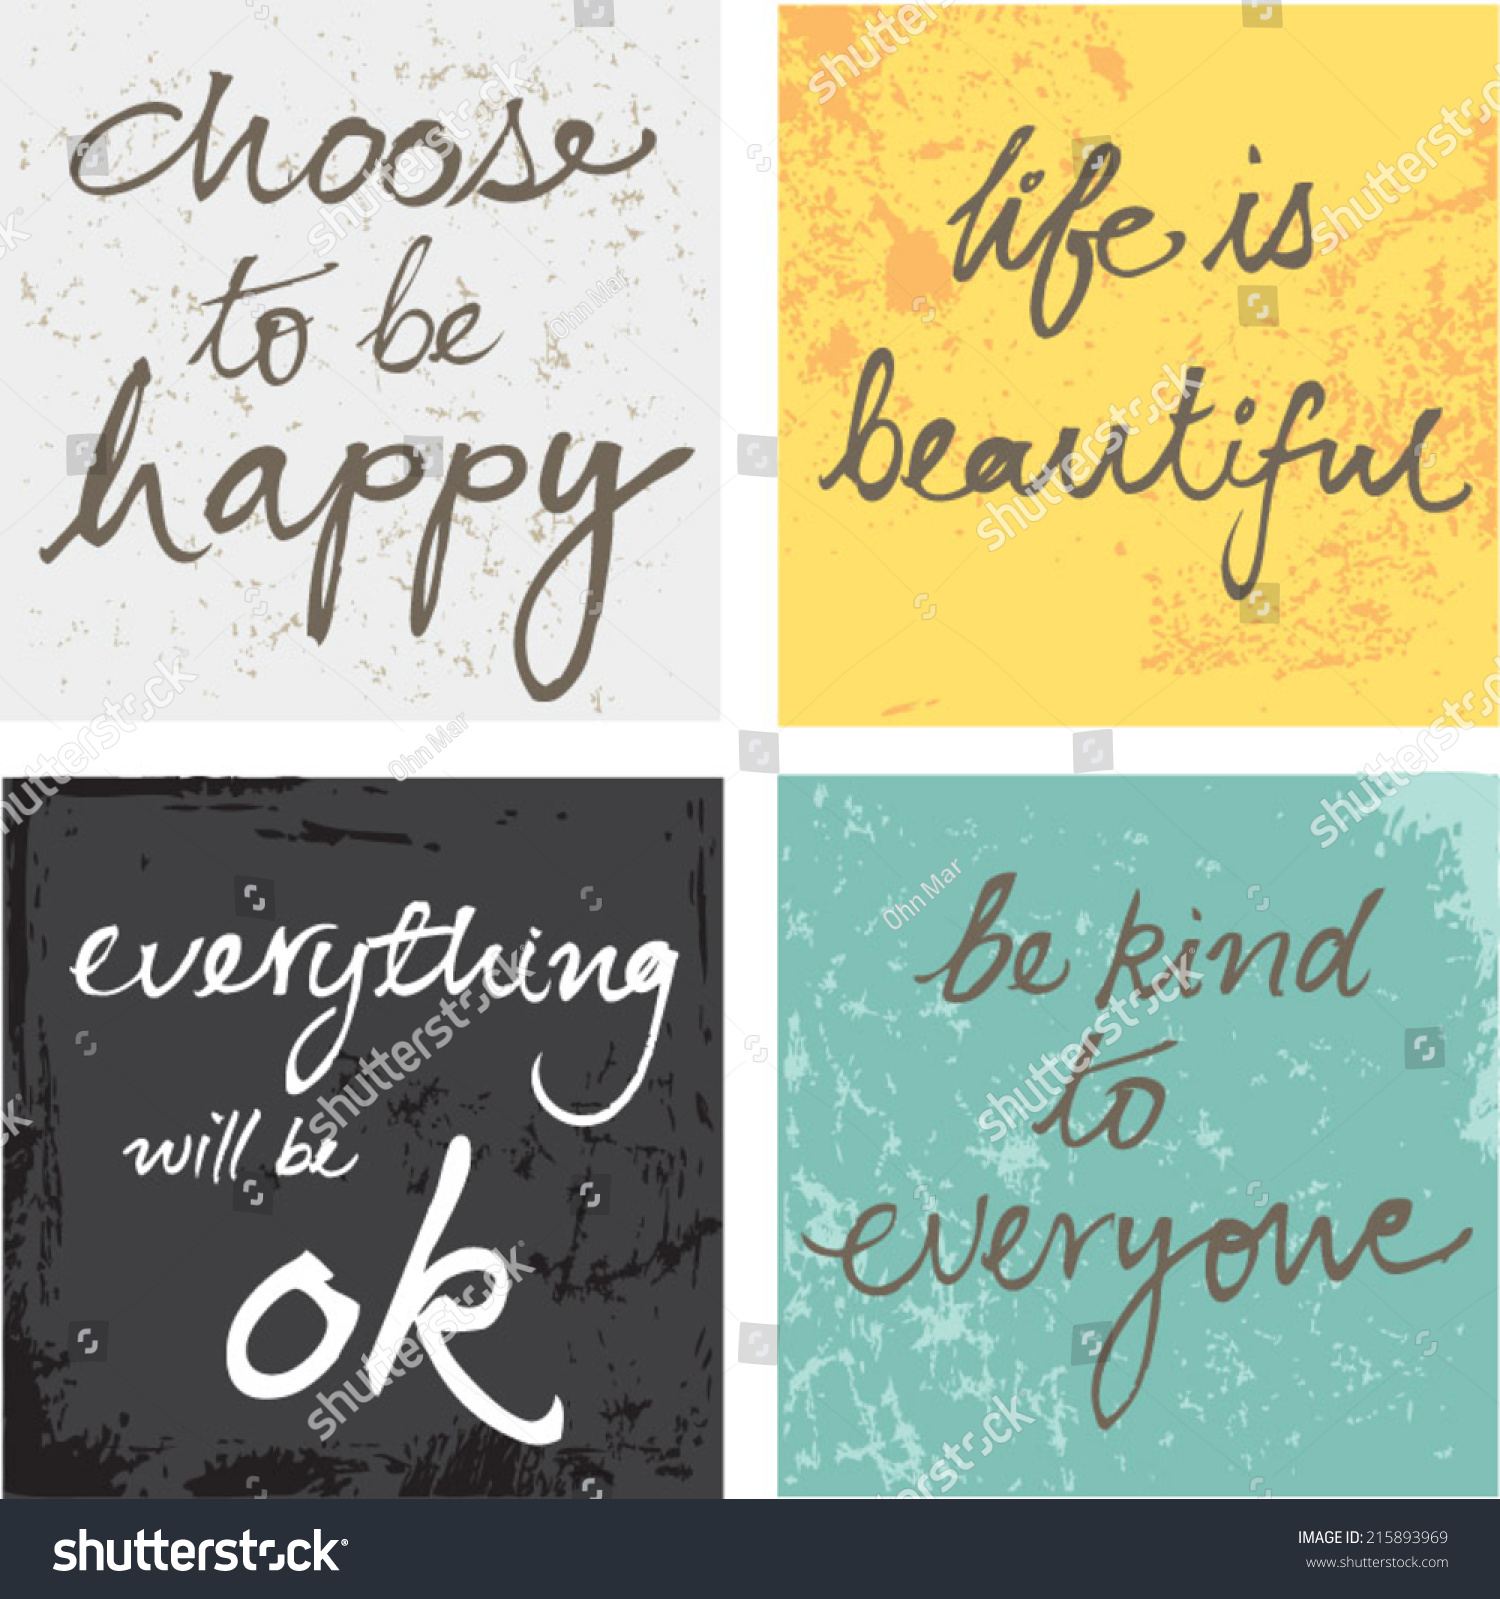 How To Be Happy In Life Quotes 4 Hand Written Inspirational Typographic Words Stock Vector